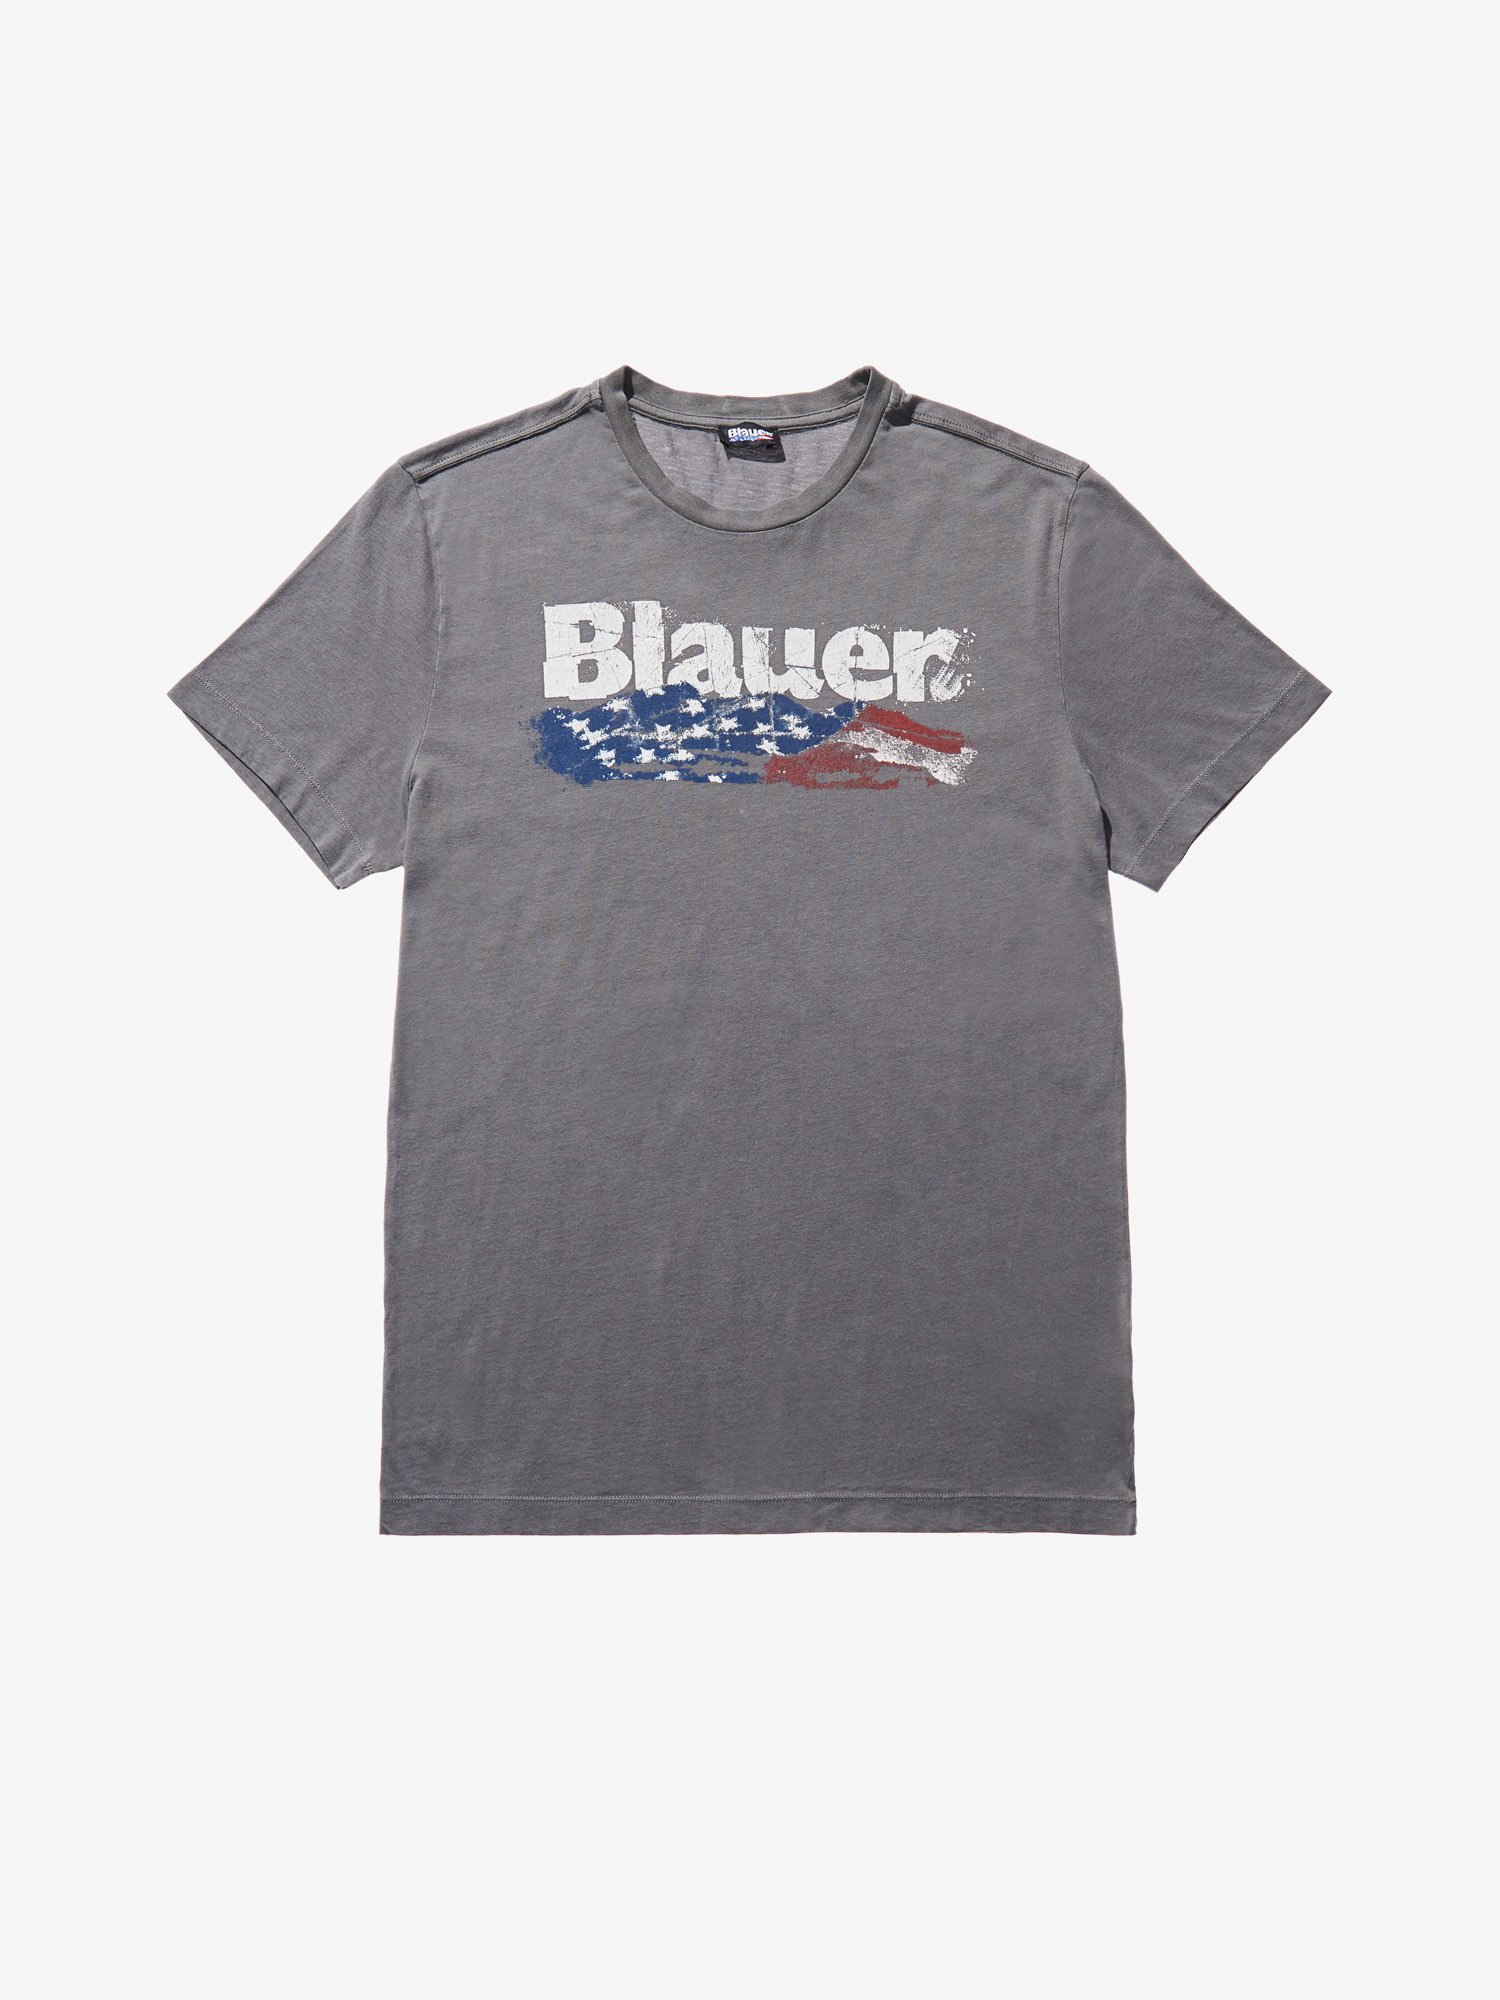 Blauer - FLAG T-SHIRT - Dark Grey - Blauer